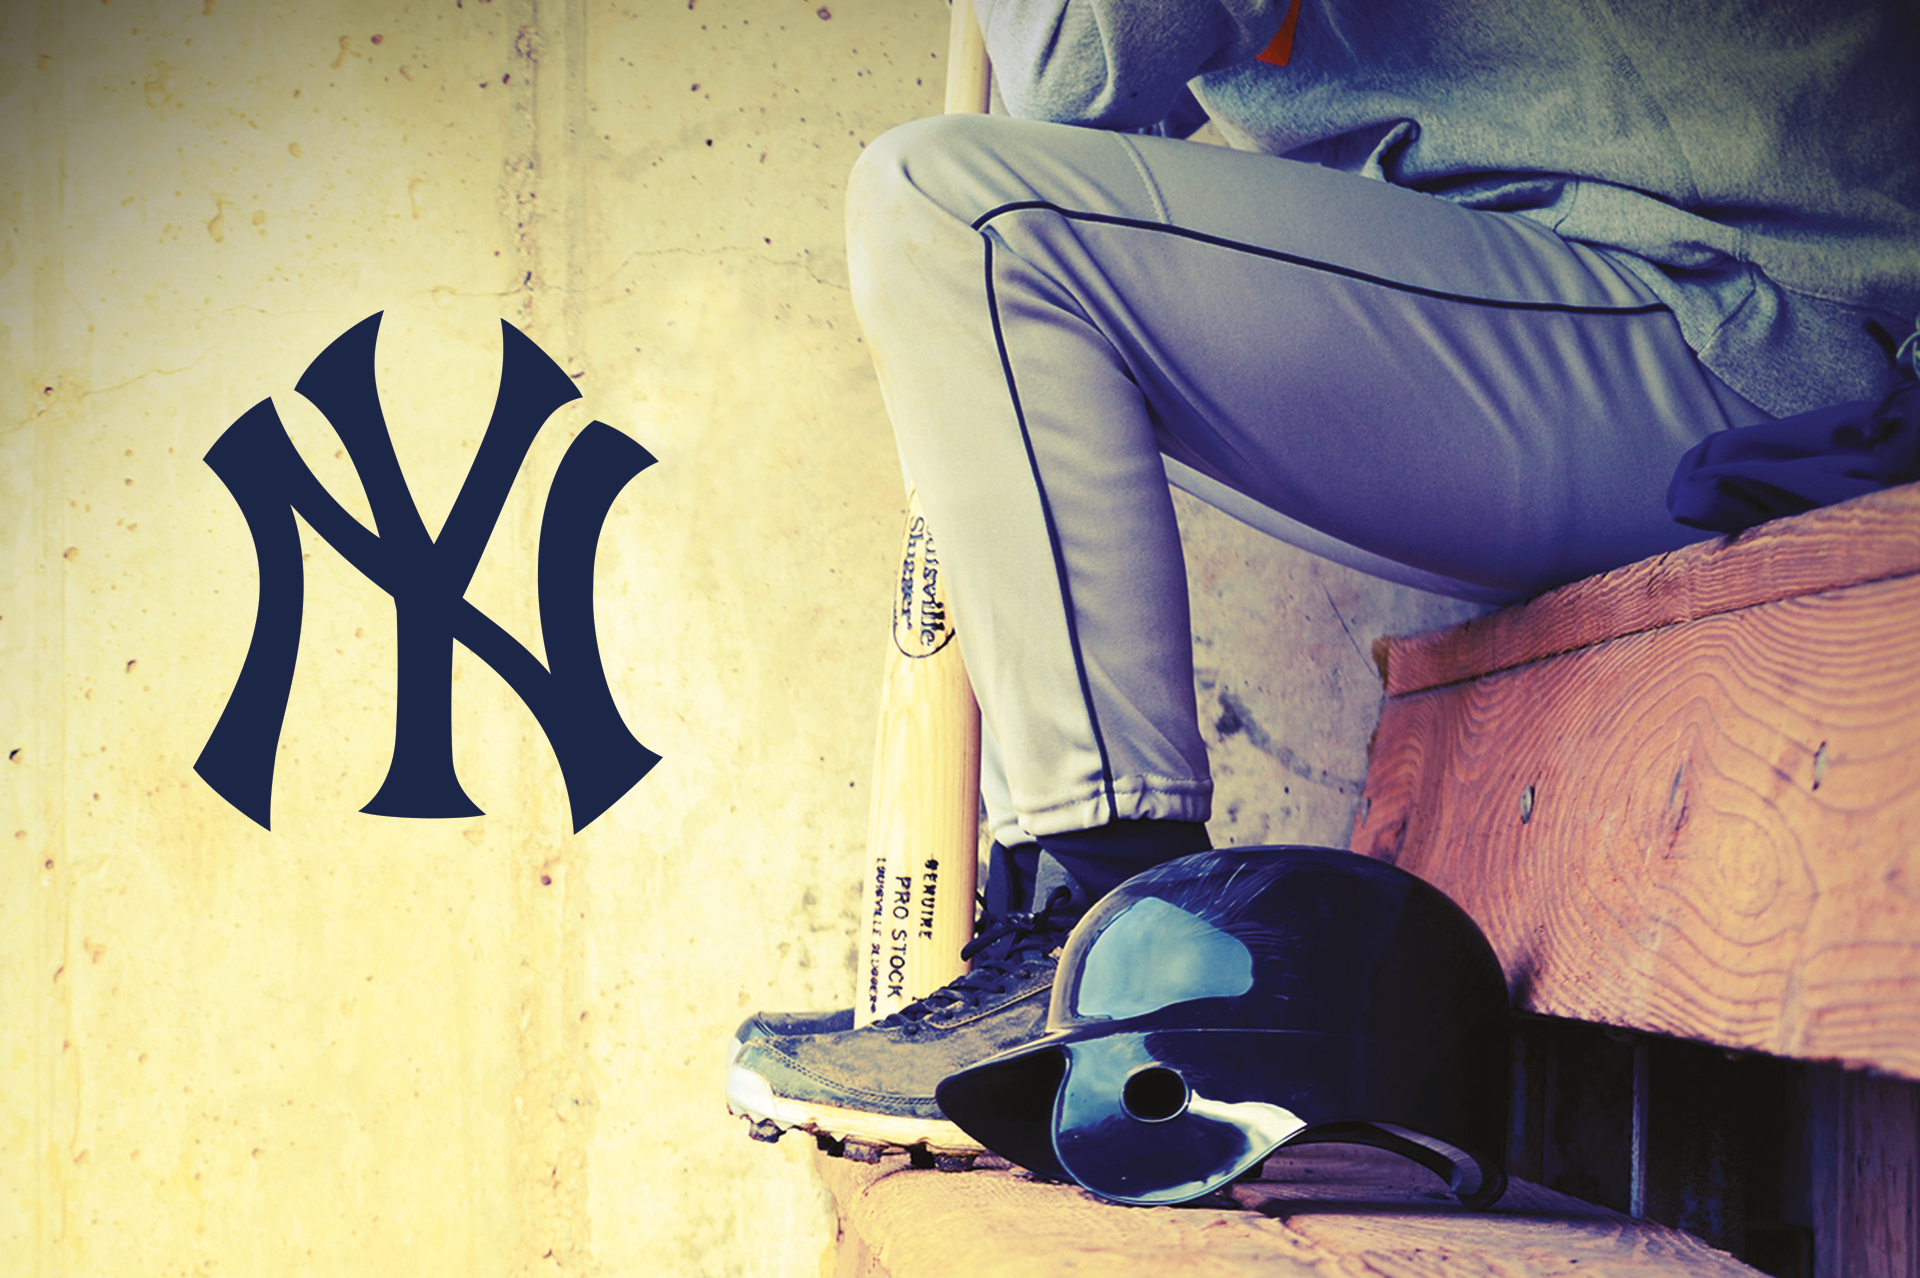 Diamond crea e produce essenze, fragranze e profumi per rappresentare al meglio l'essenza del tuo brand. Scopri la linea Ney York Yankees for Men